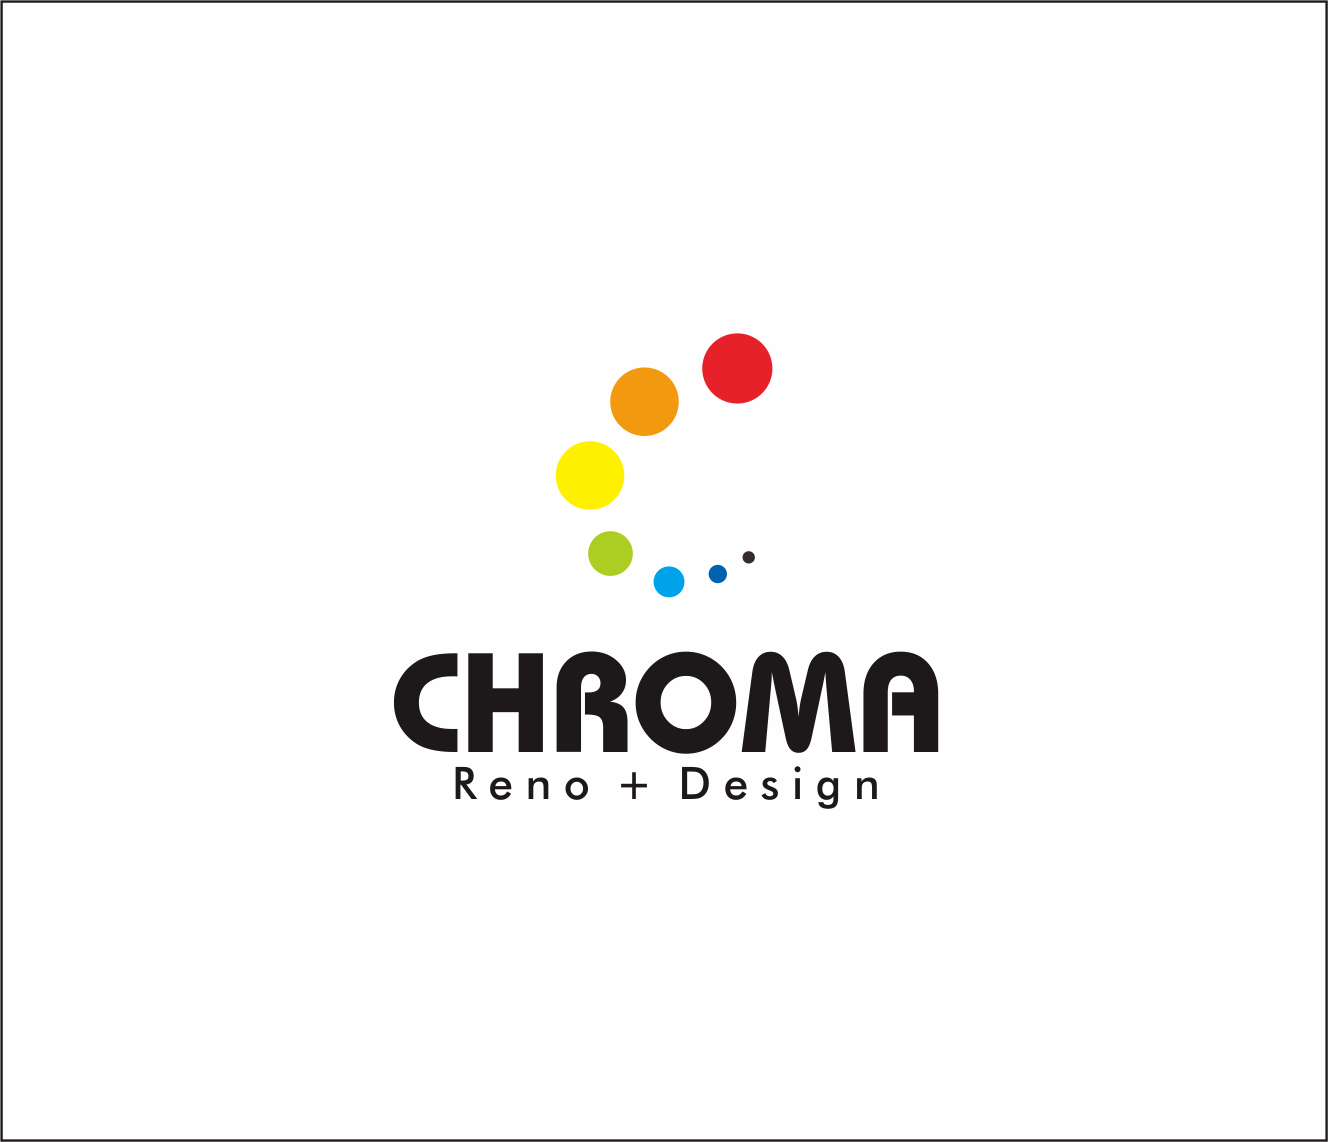 Logo Design by Armada Jamaluddin - Entry No. 204 in the Logo Design Contest Inspiring Logo Design for Chroma Reno+Design.